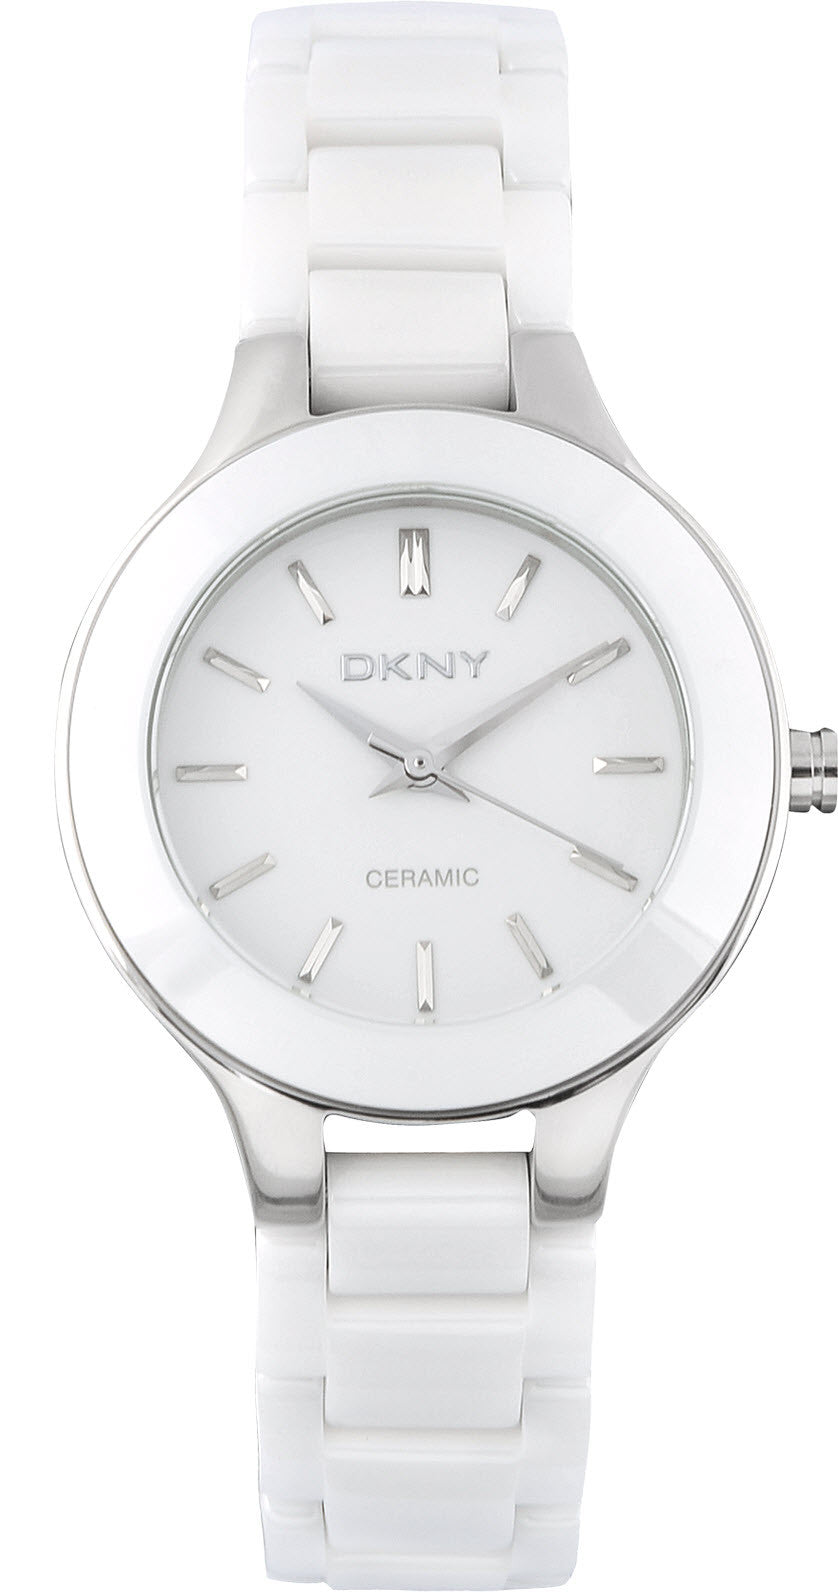 DKNY Watch Ceramic D